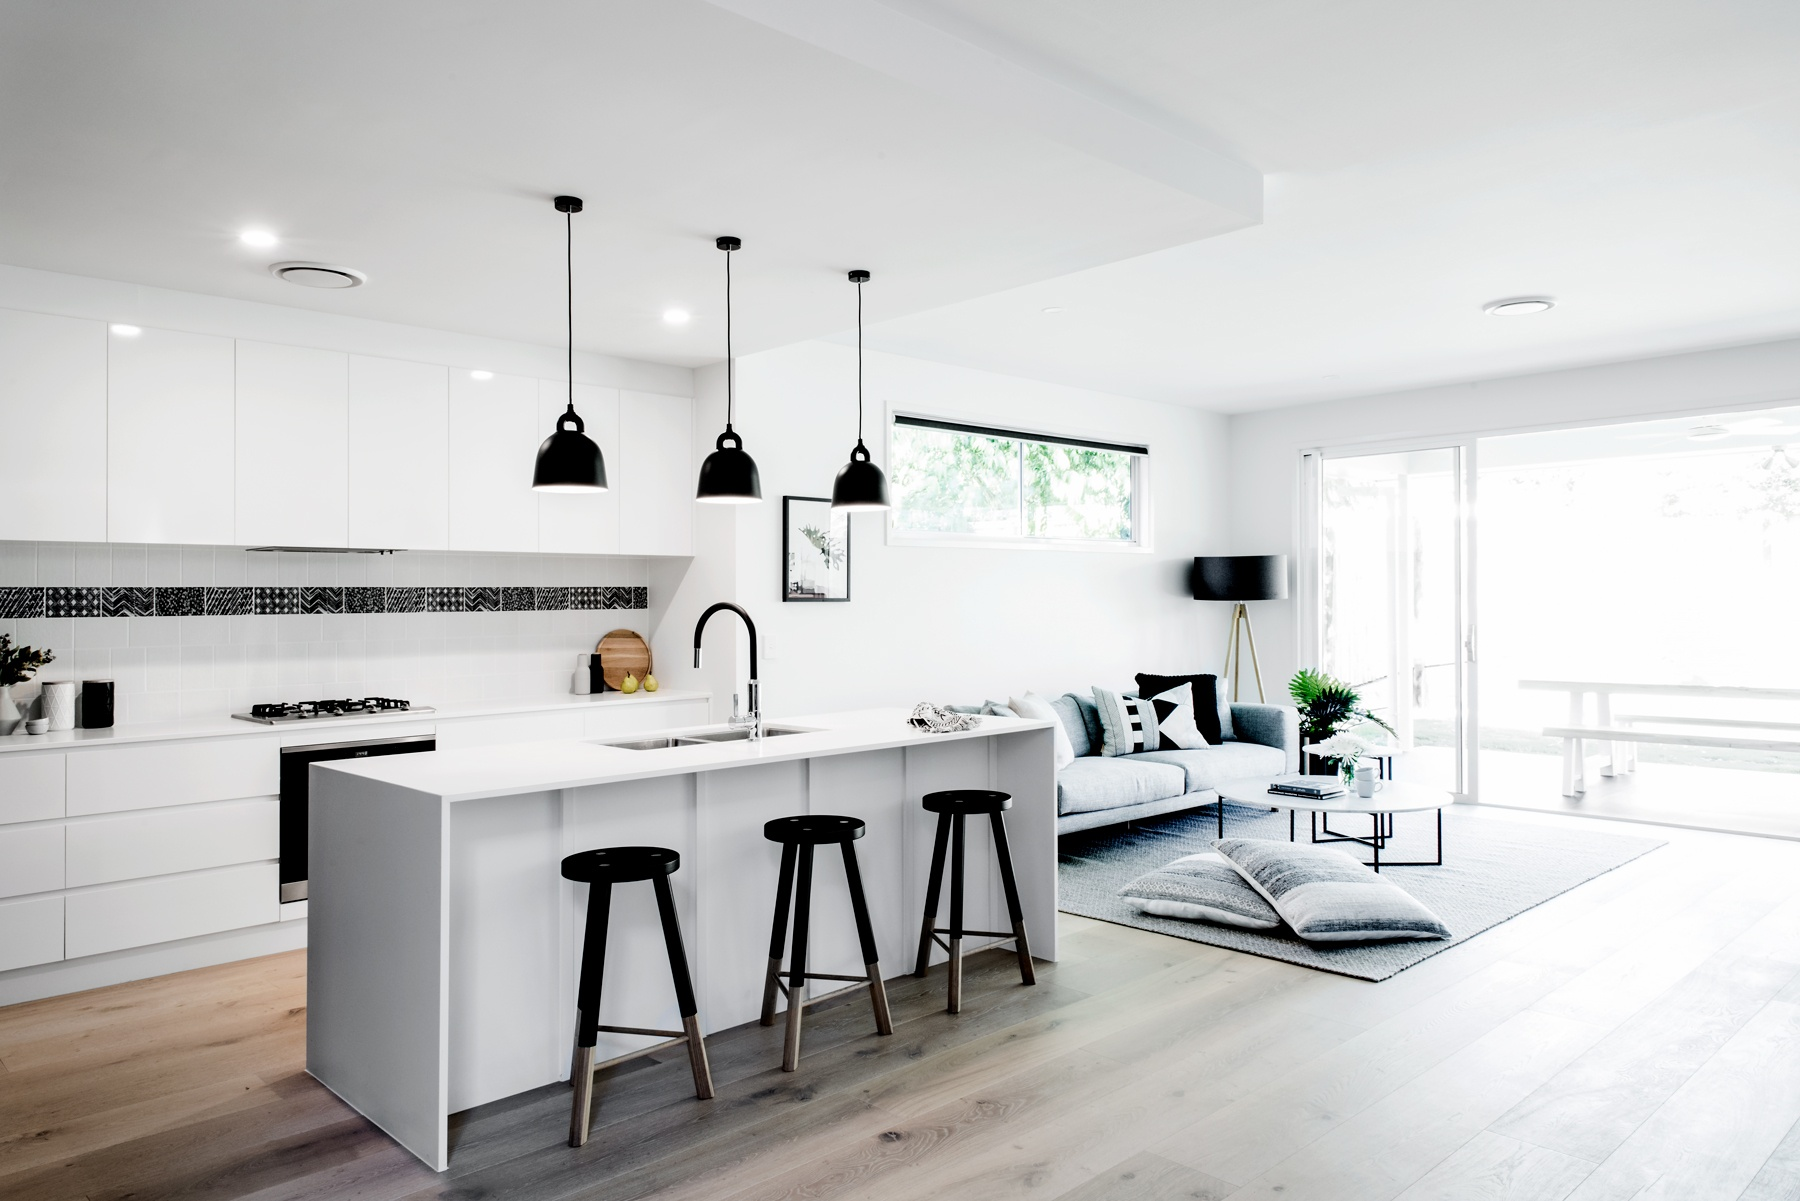 Queensland small lot home builder Kalka | scandi-style boathouse in Manly display home